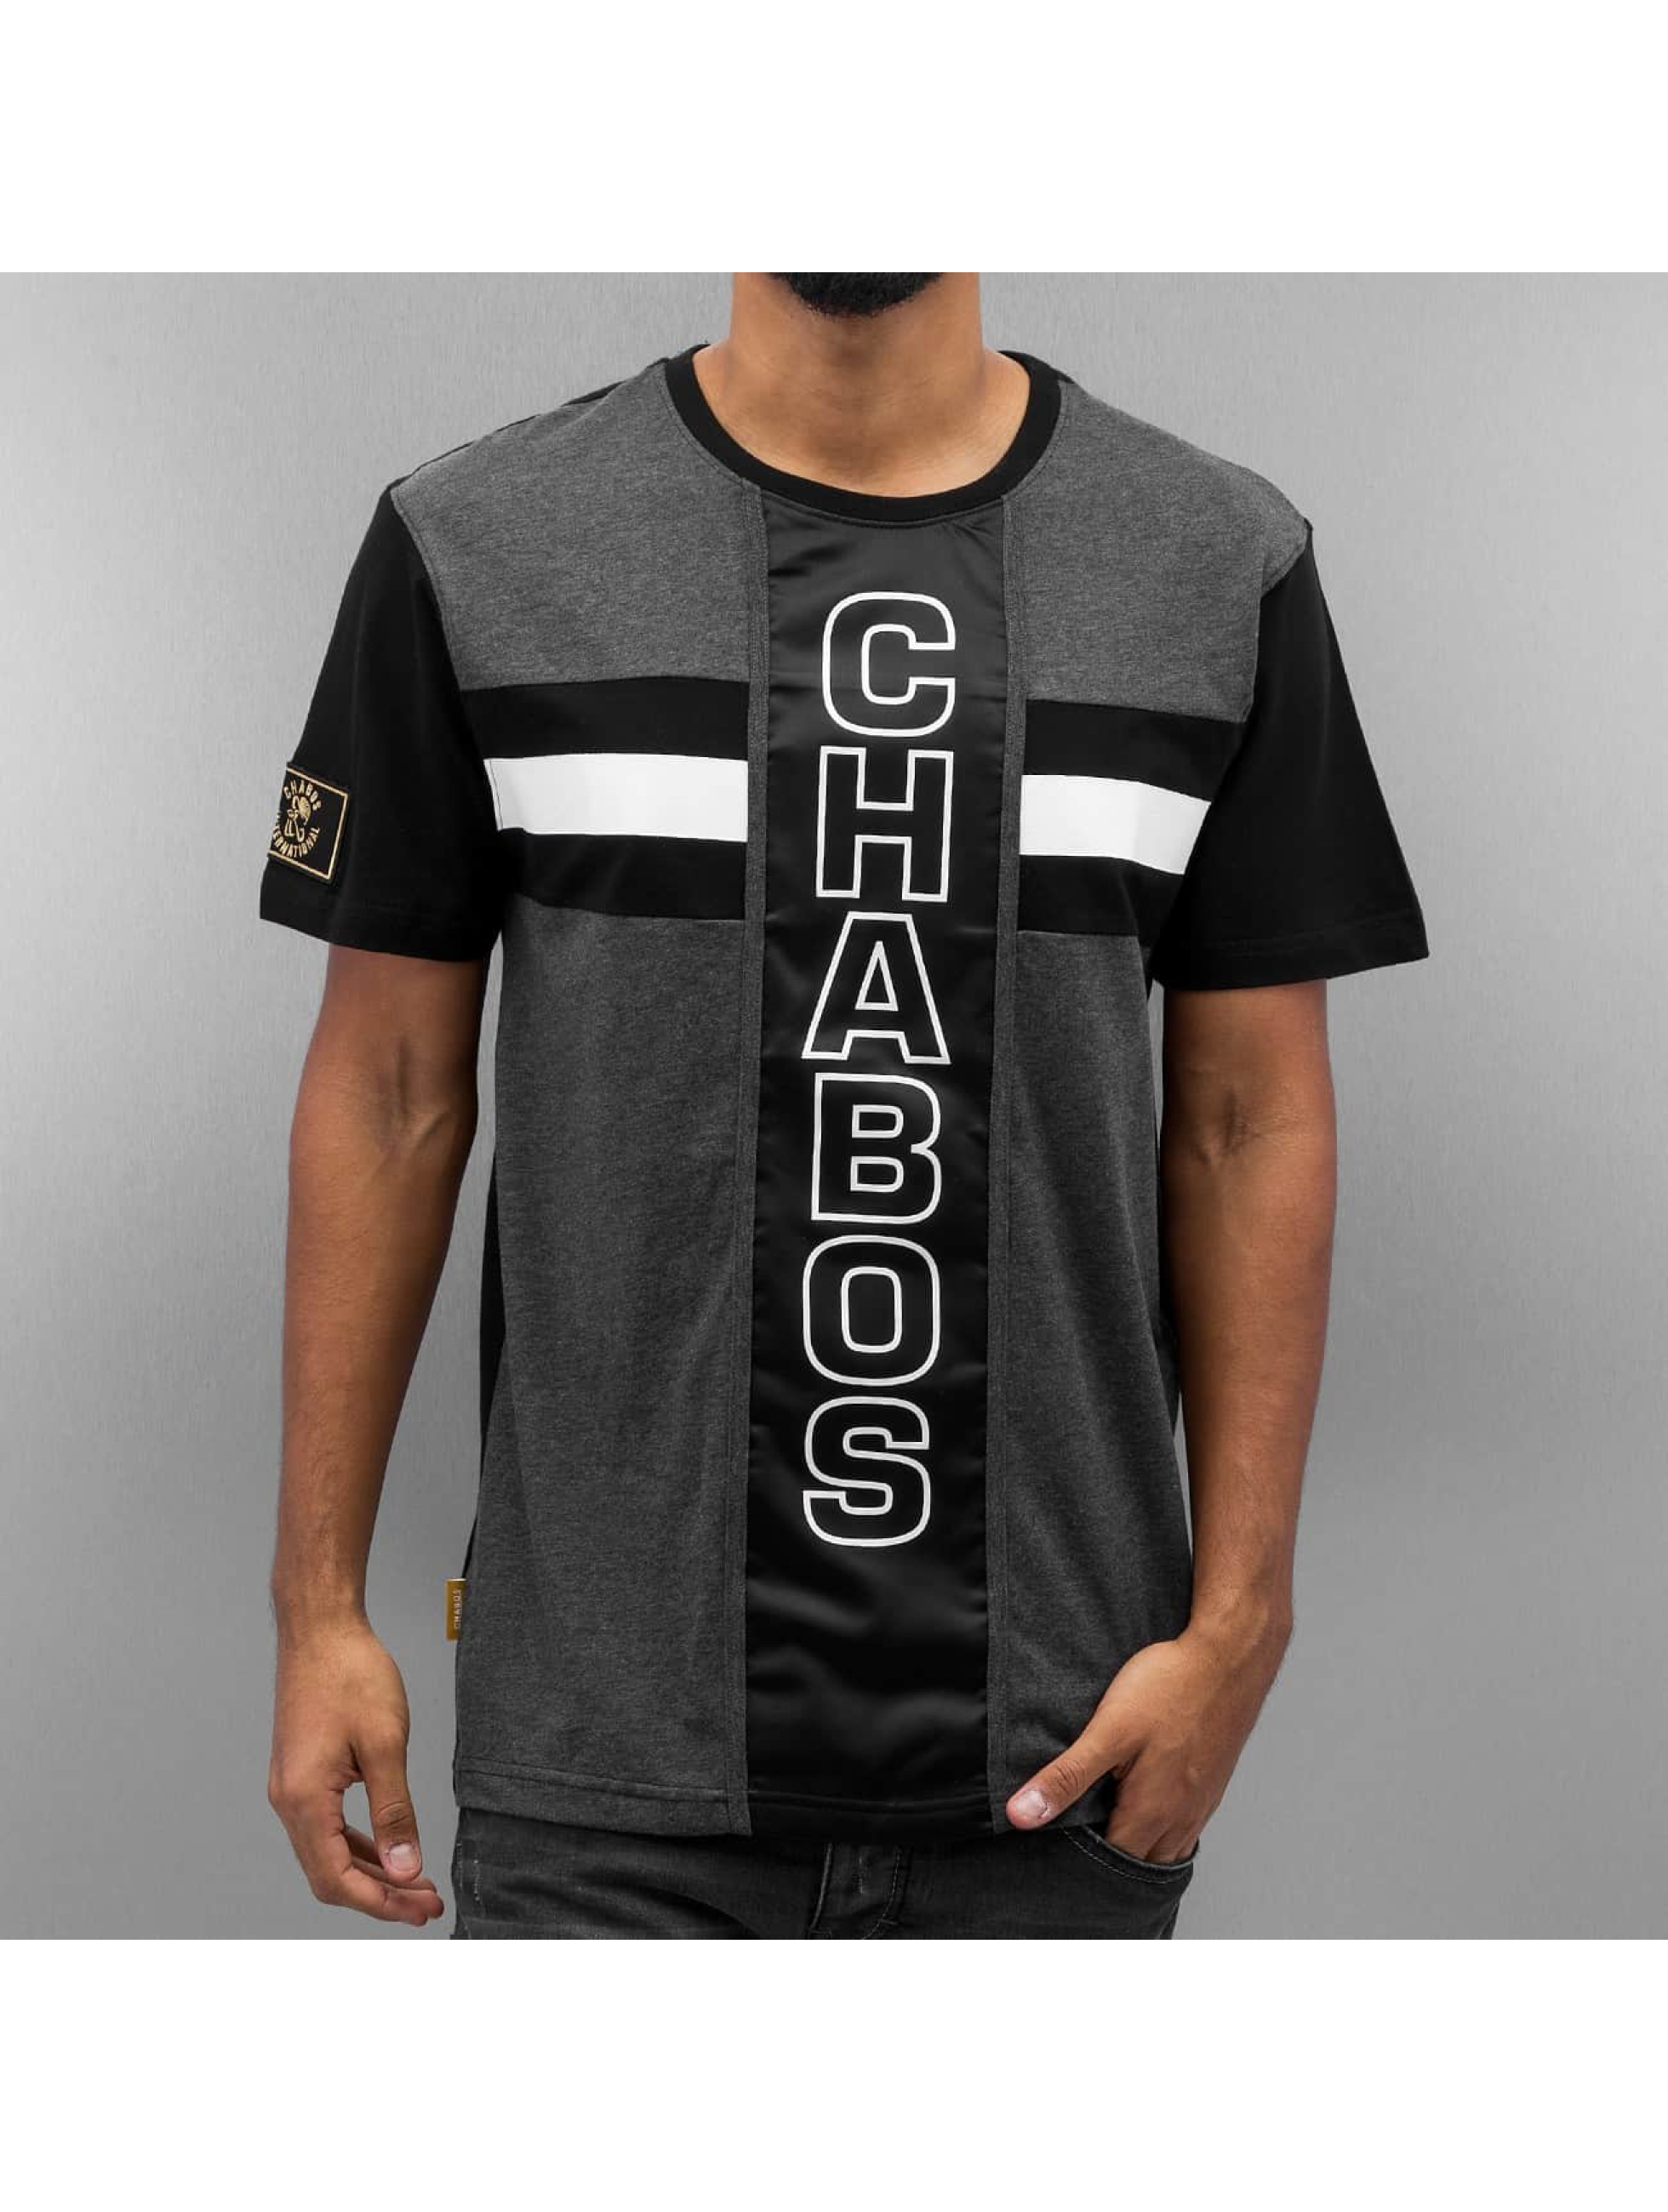 CHABOS IIVII T-Shirt Vertical gray